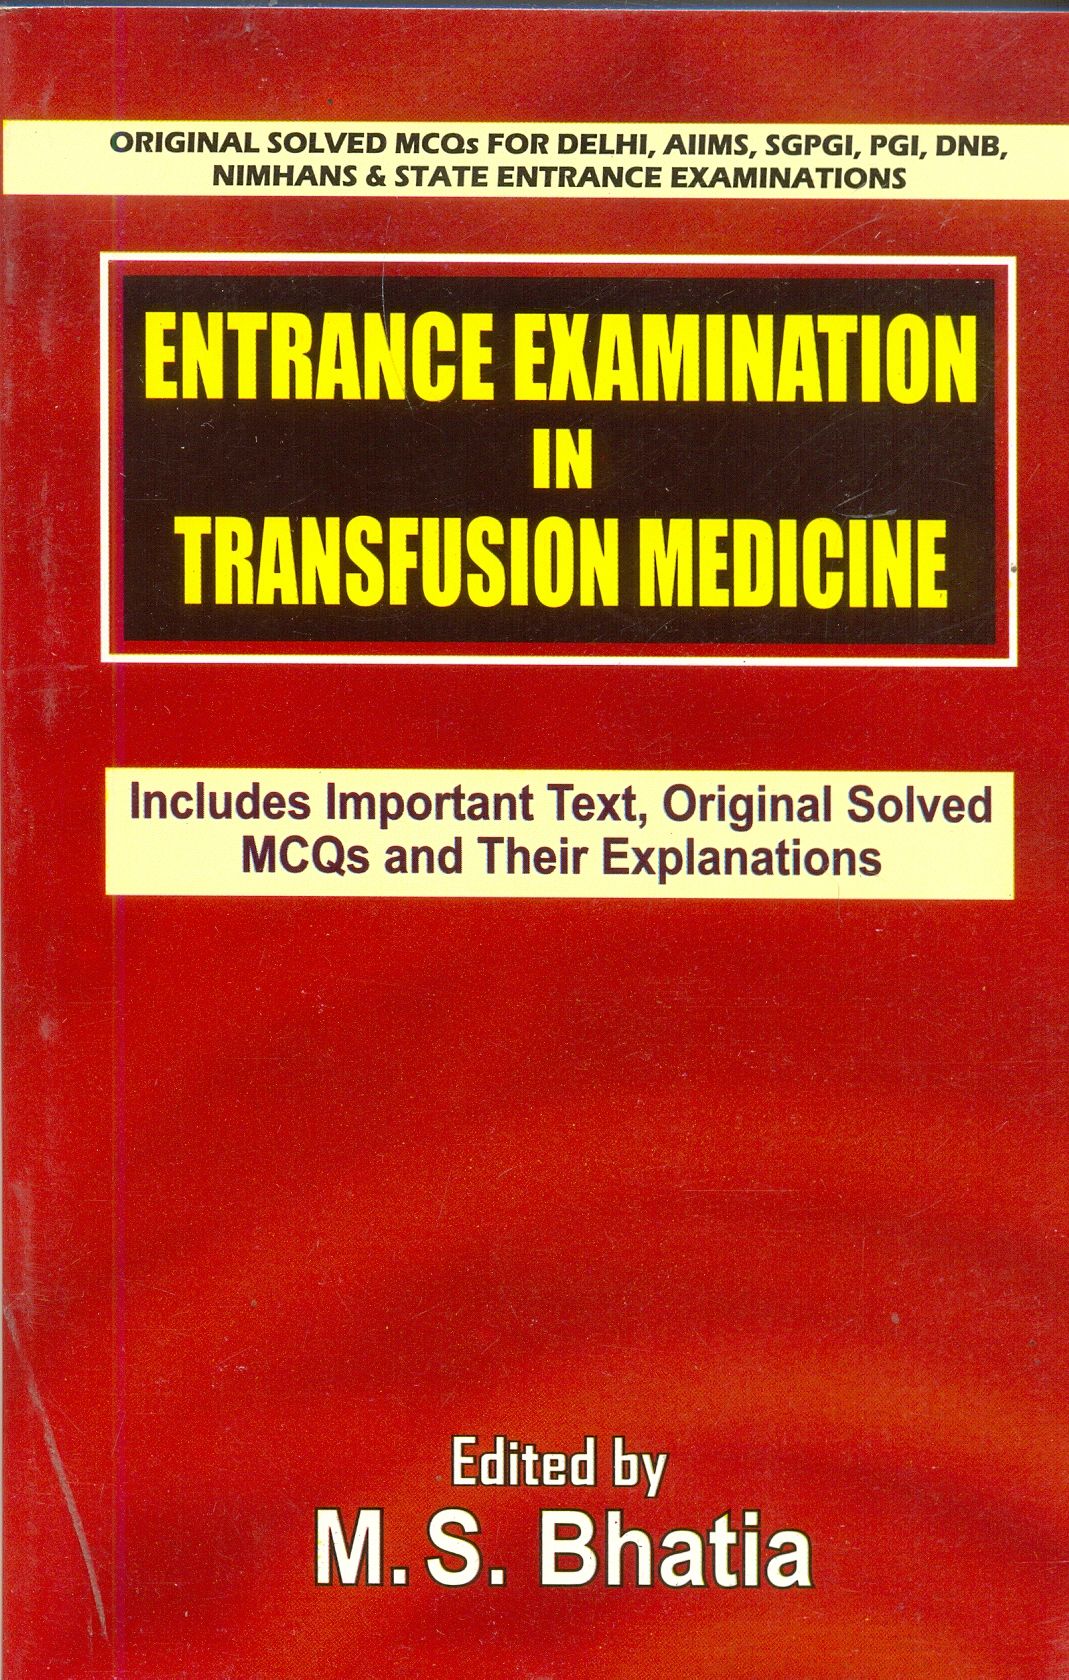 Entrance Examination in Transfusion Medicine